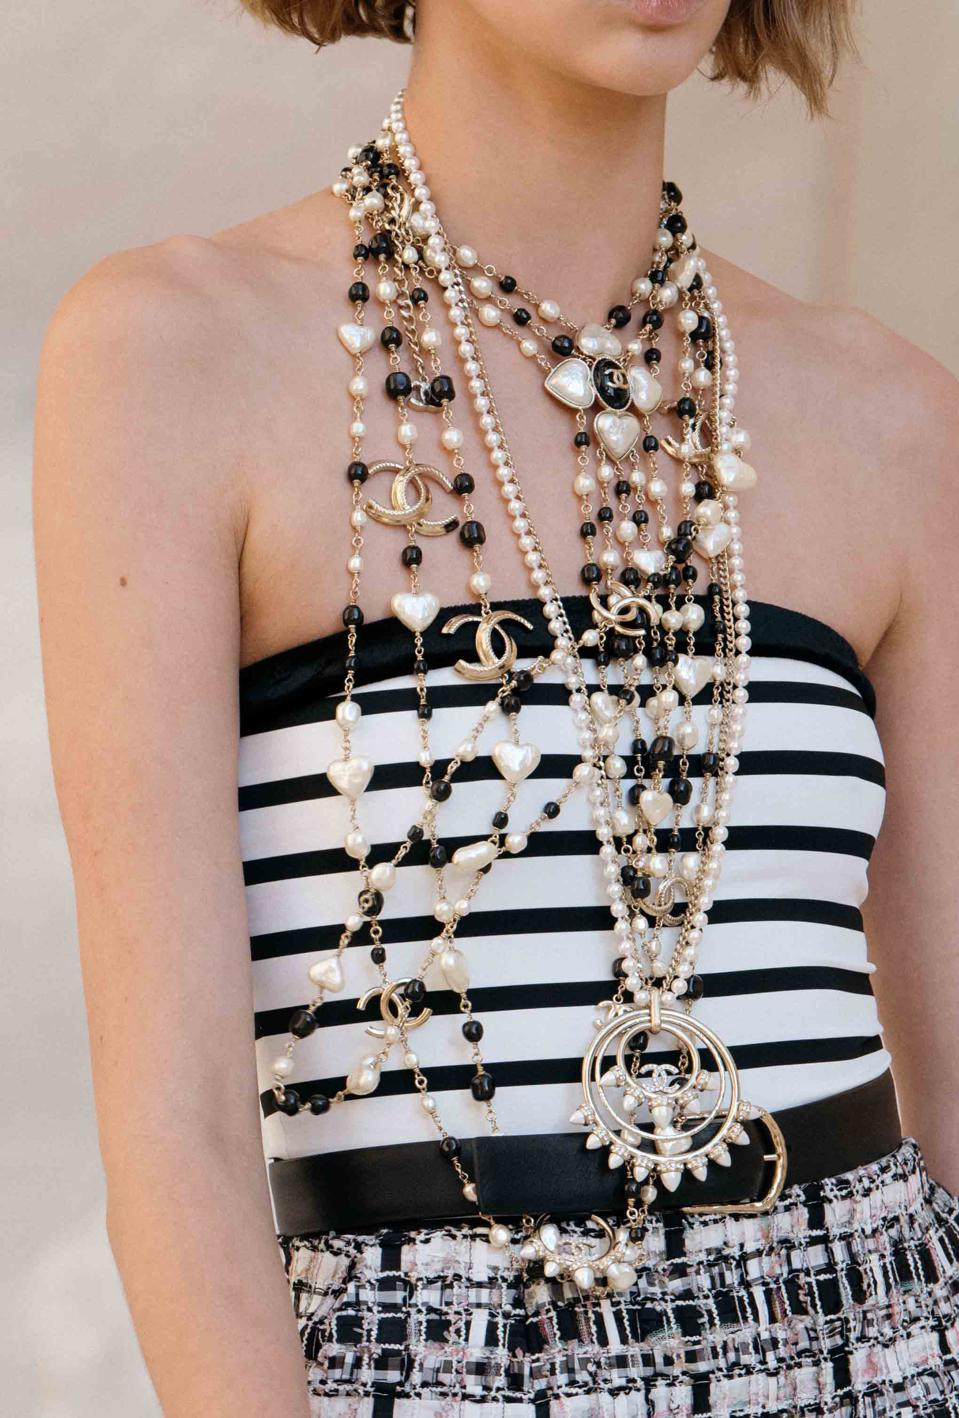 Layers of black and white, layers of chains, long necklaces